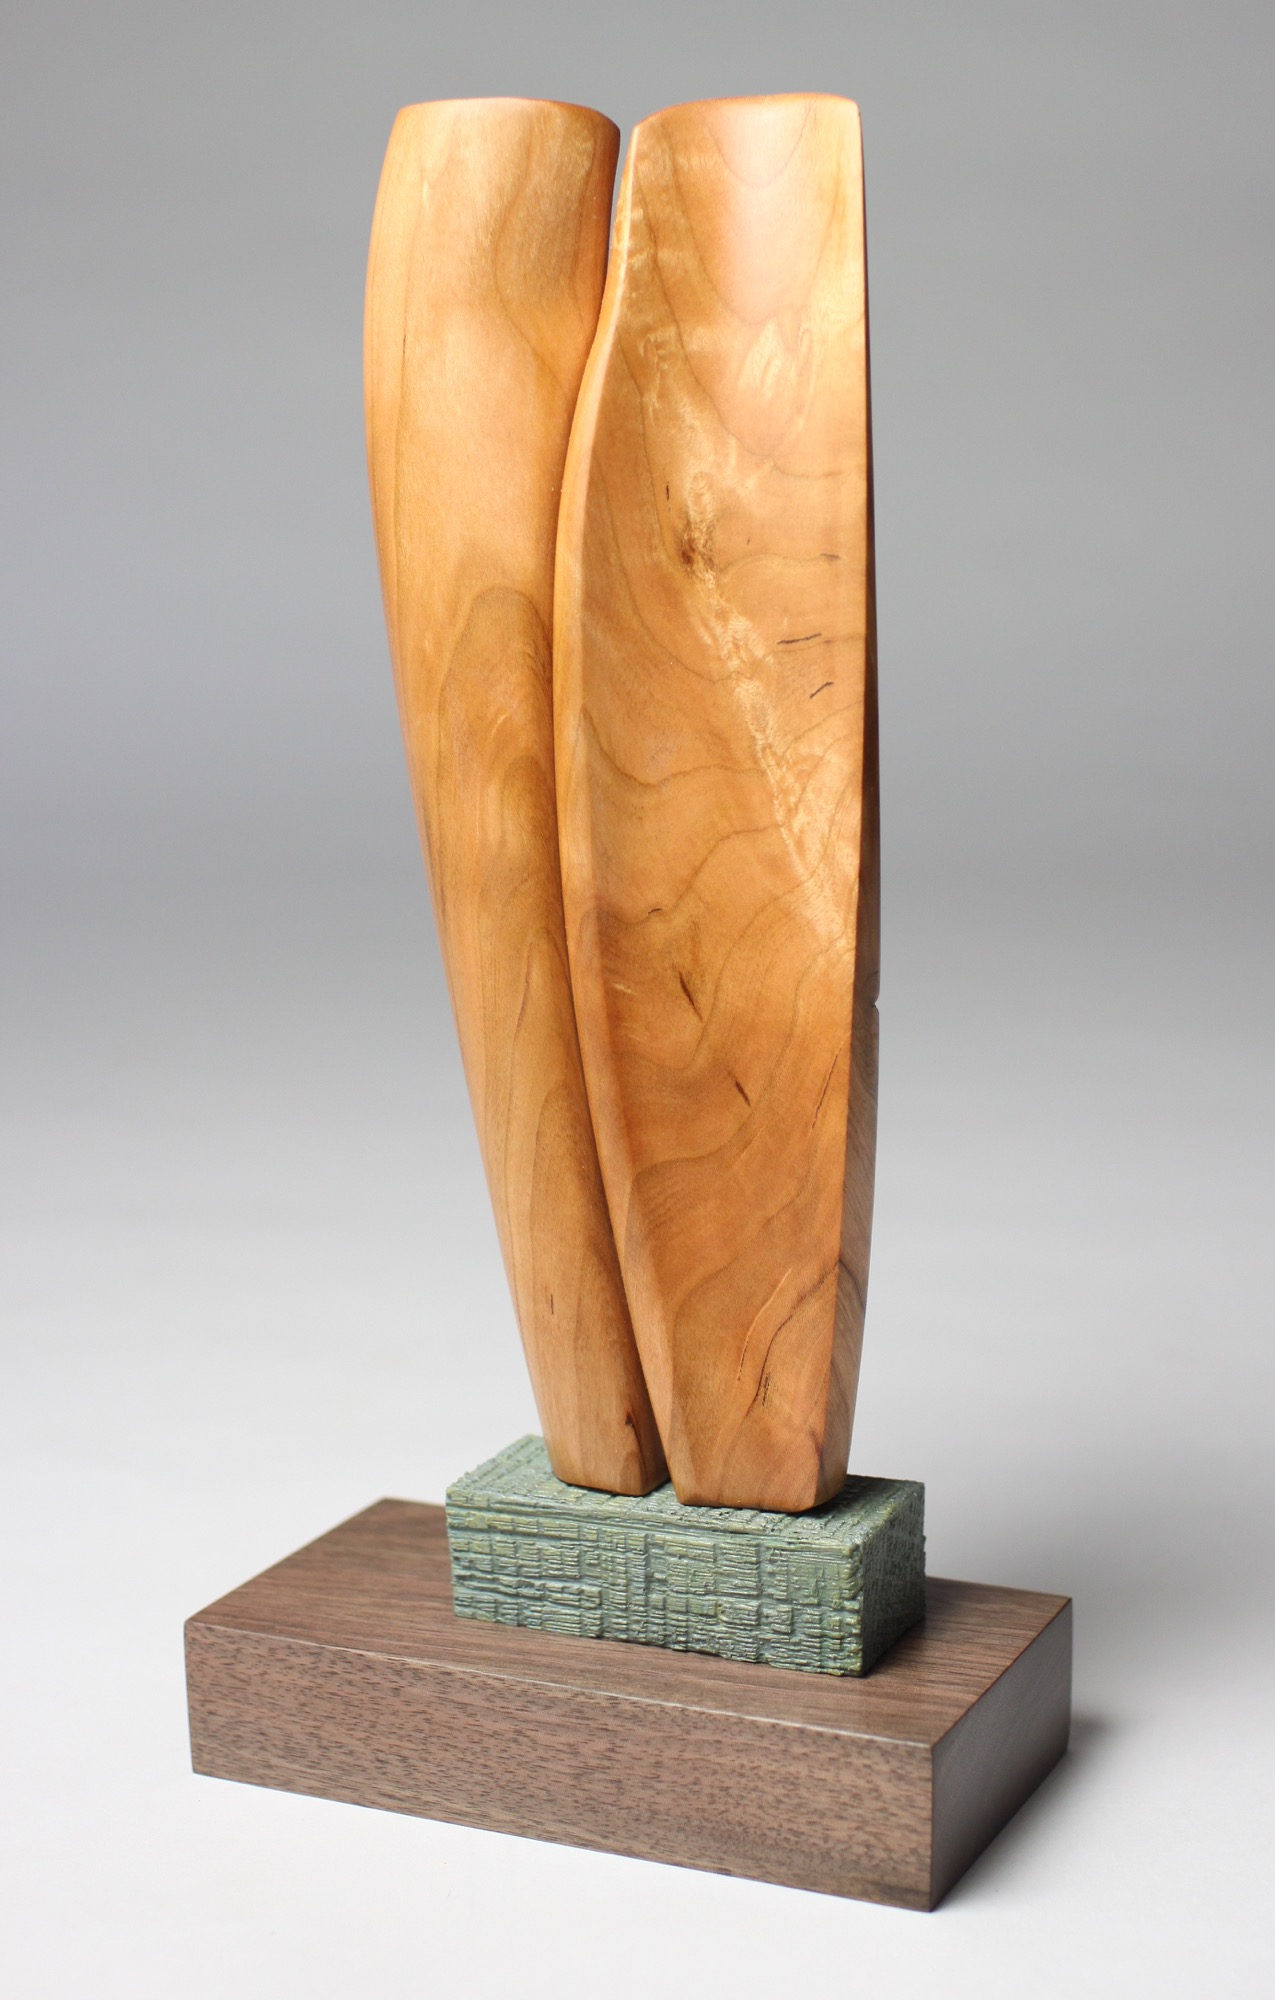 Sculpture #1 (View of Back)